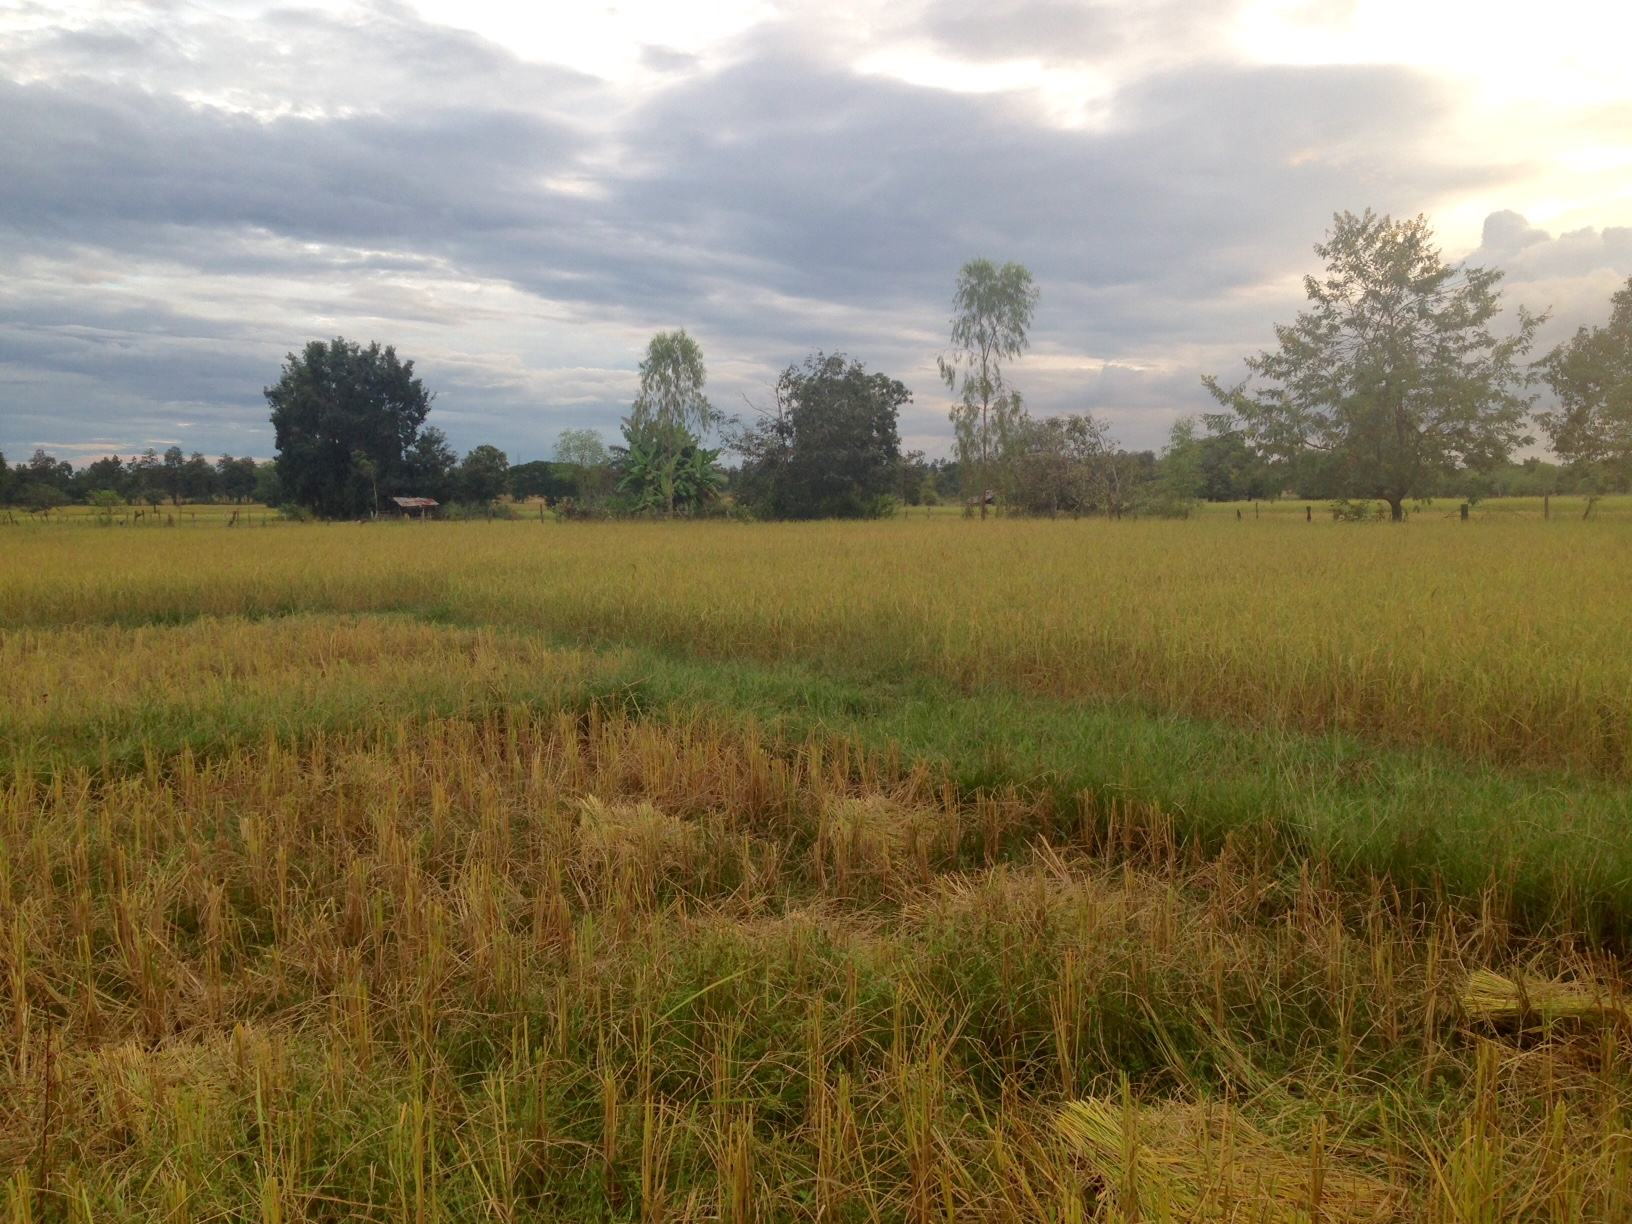 In the foreground: rice fields that have been harvested, surrounded by rice fields awaiting harvest